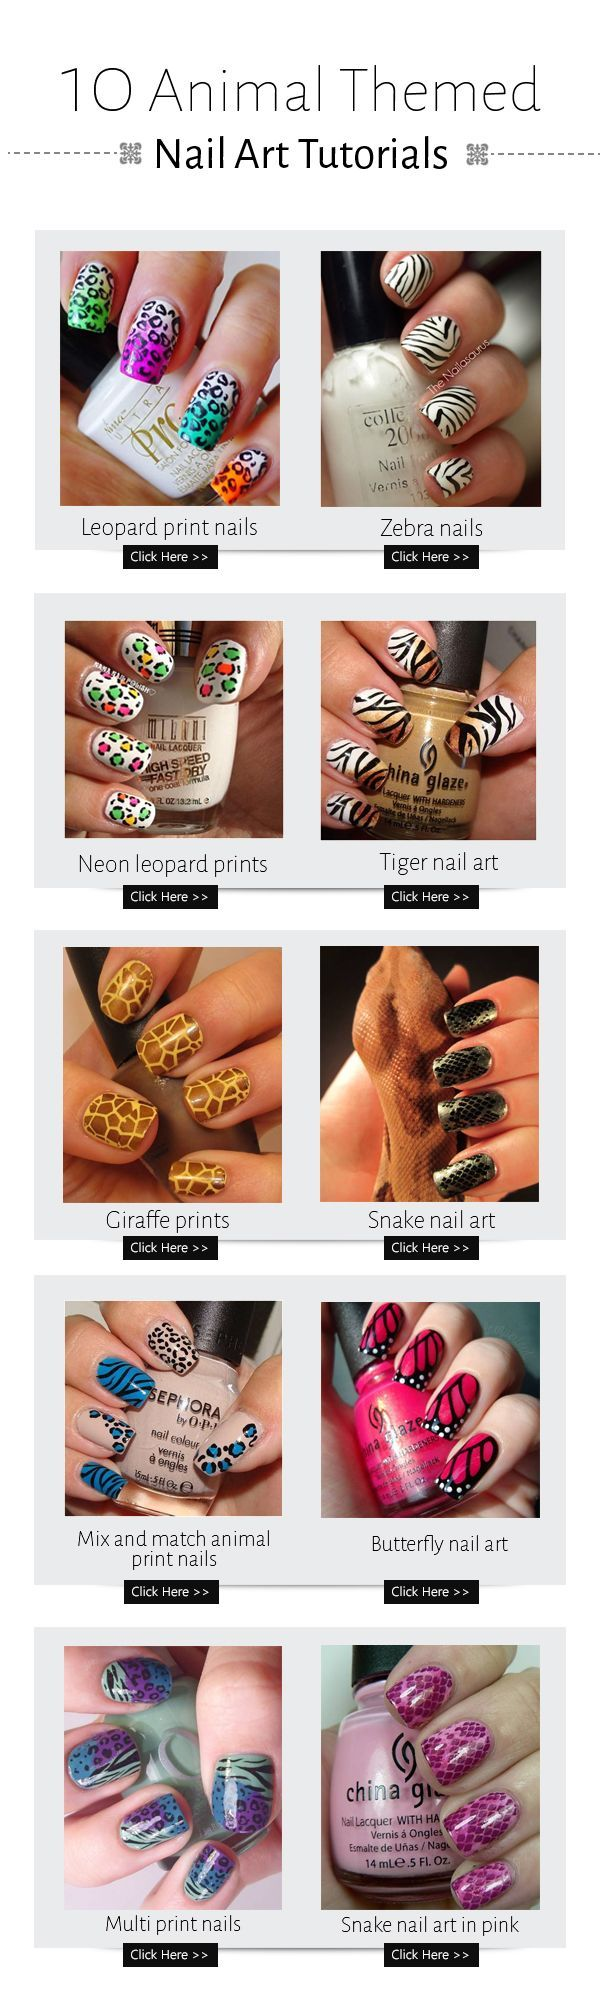 50 such amazing nail arts which are inspired by animals.